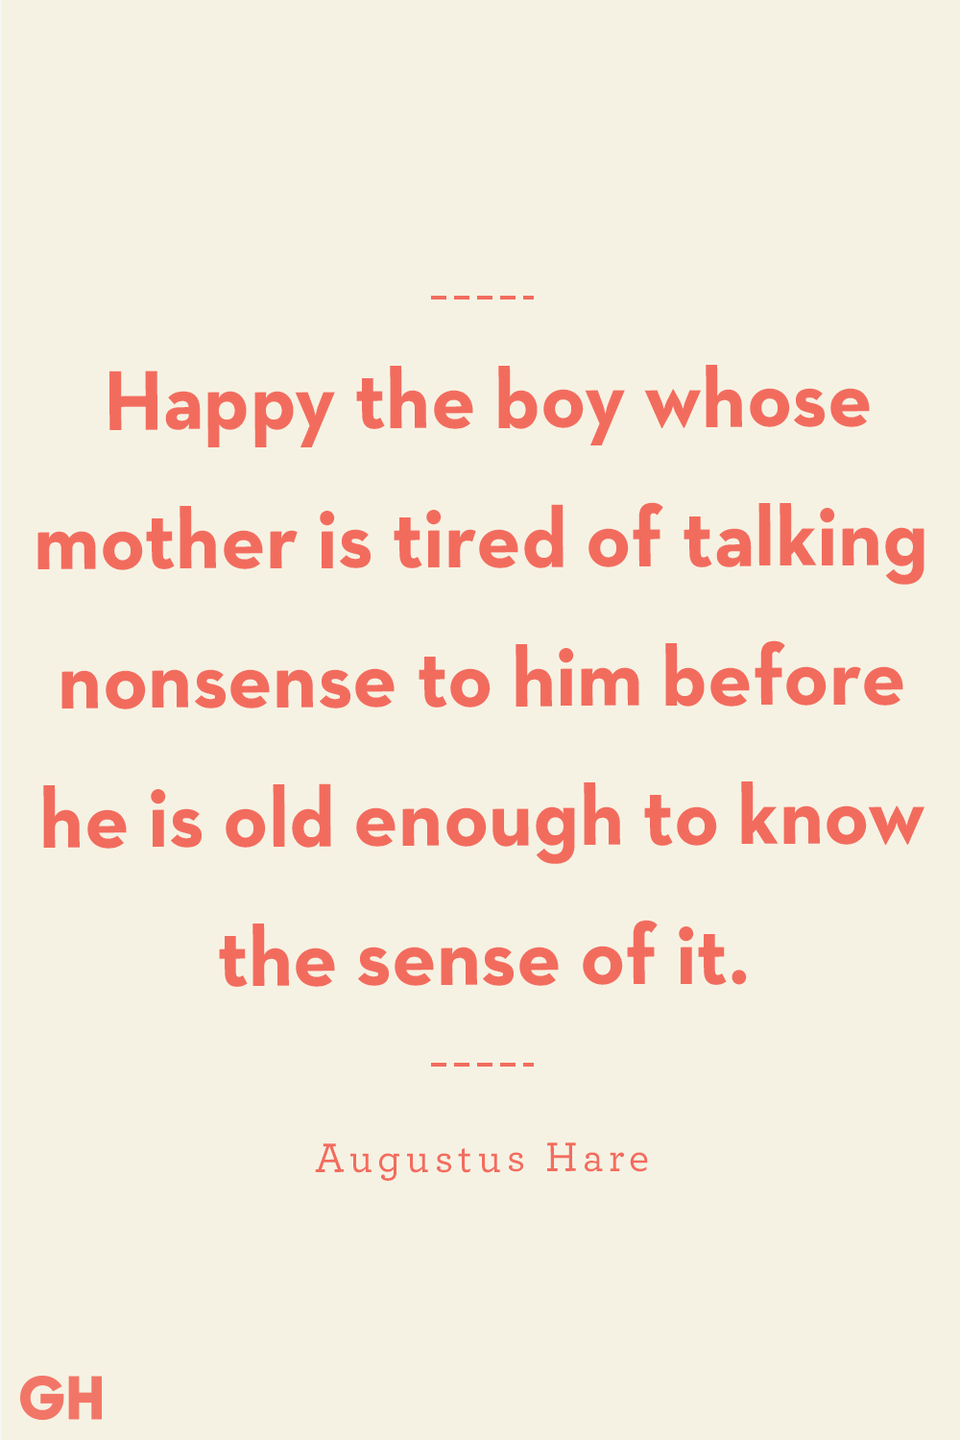 <p>Happy the boy whose mother is tired of talking nonsense to him before he is old enough to know the sense of it.</p>